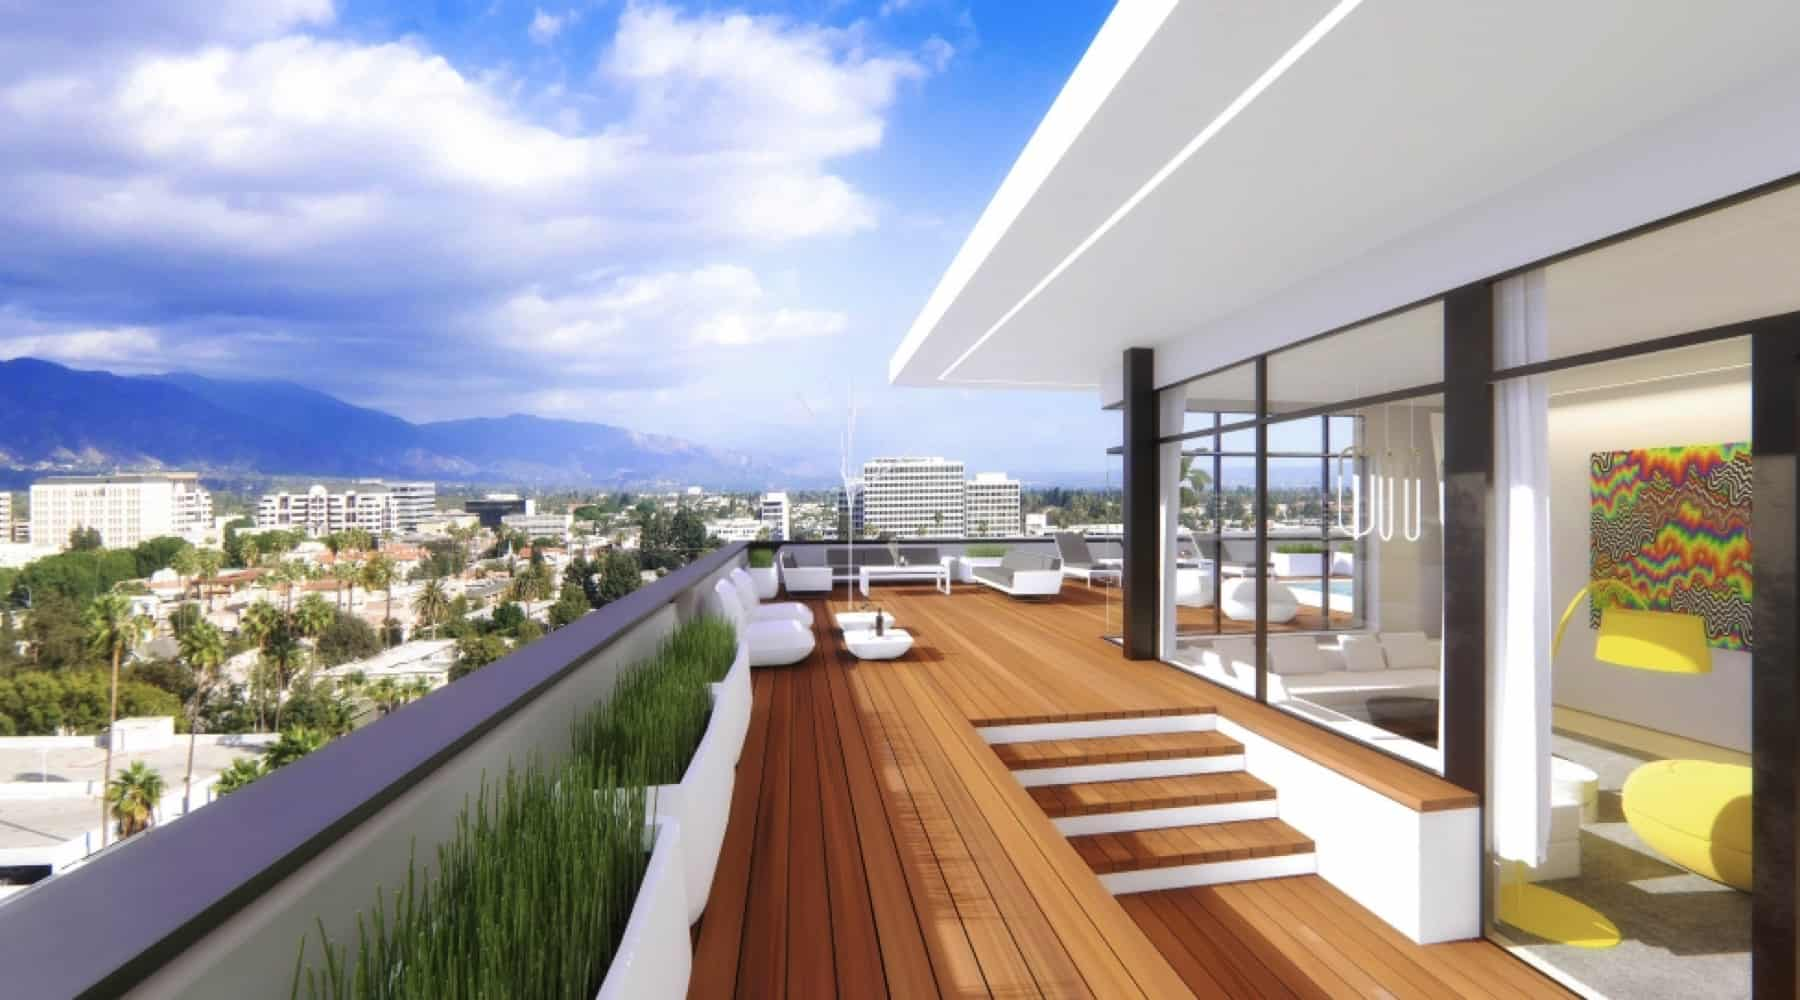 Penthouse_2_Rendering_Deck